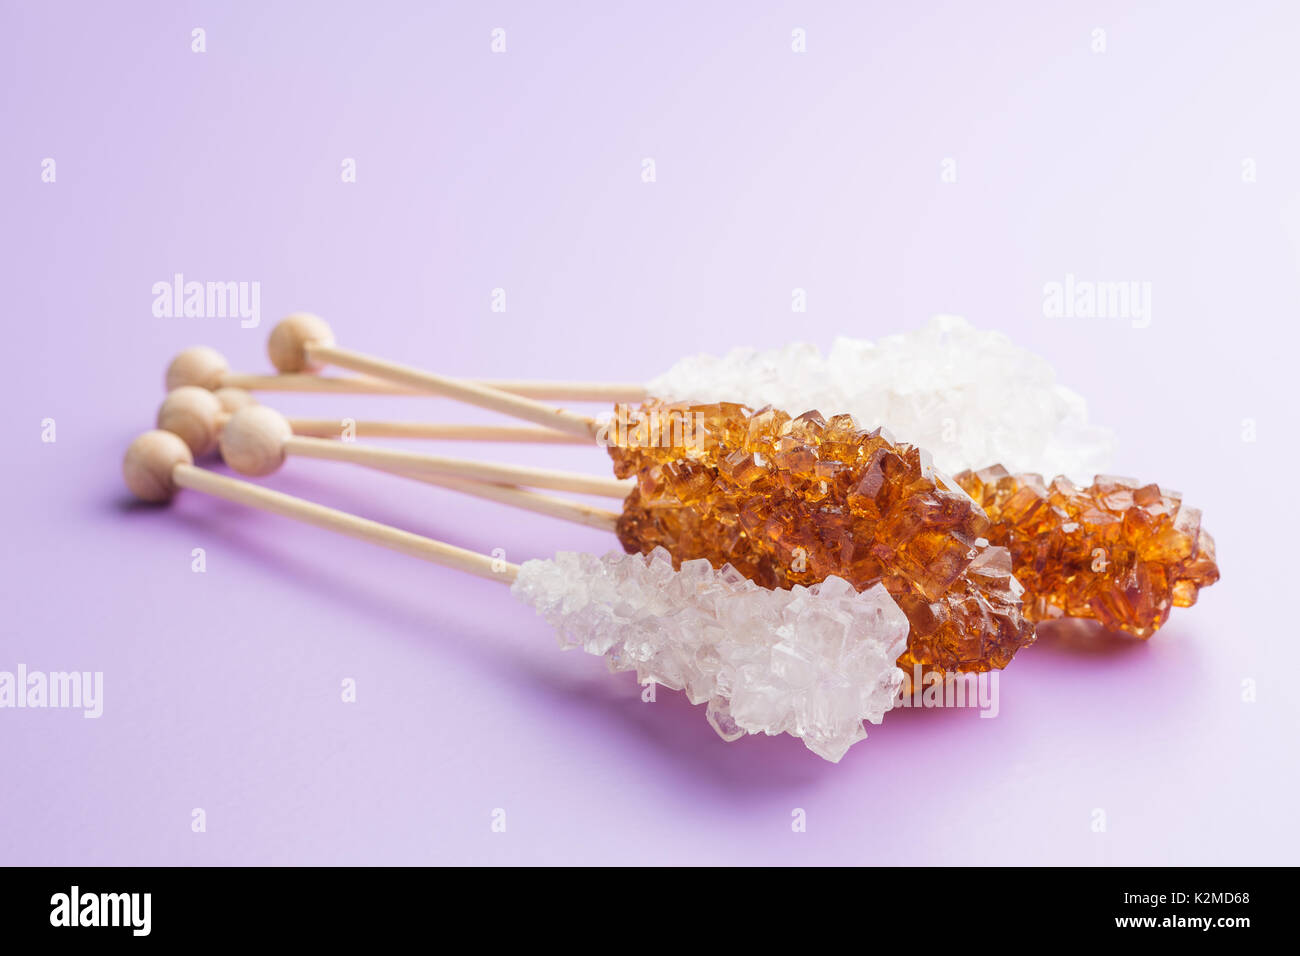 Crystalline sugar on wooden stick. Brown and white sugar. Refined and unrefined sugar. - Stock Image